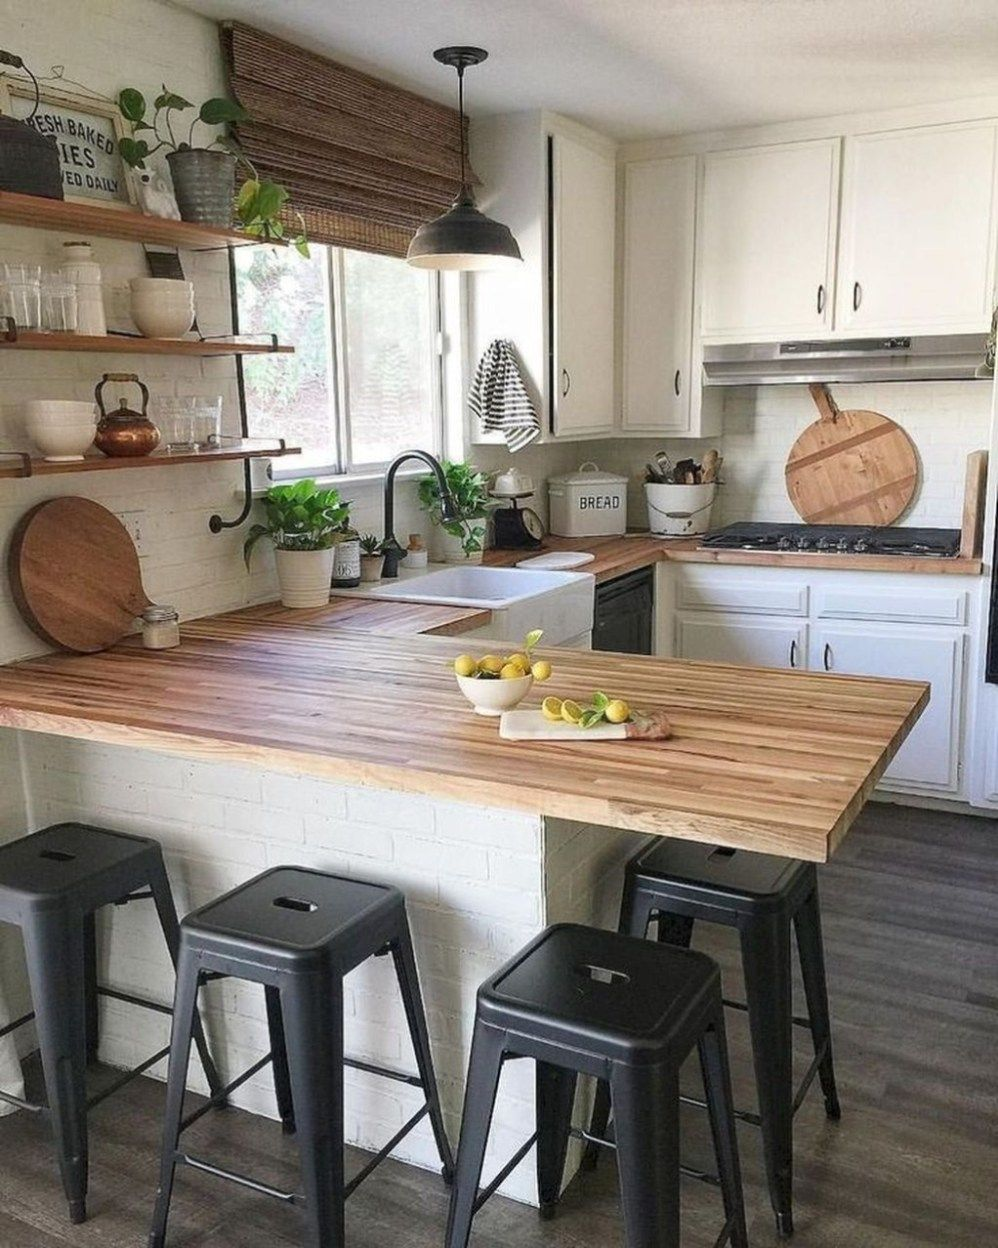 48 Lovely Farmhouse Kitchen Ideas To Make Cooking More Fun - HOOMDESIGN